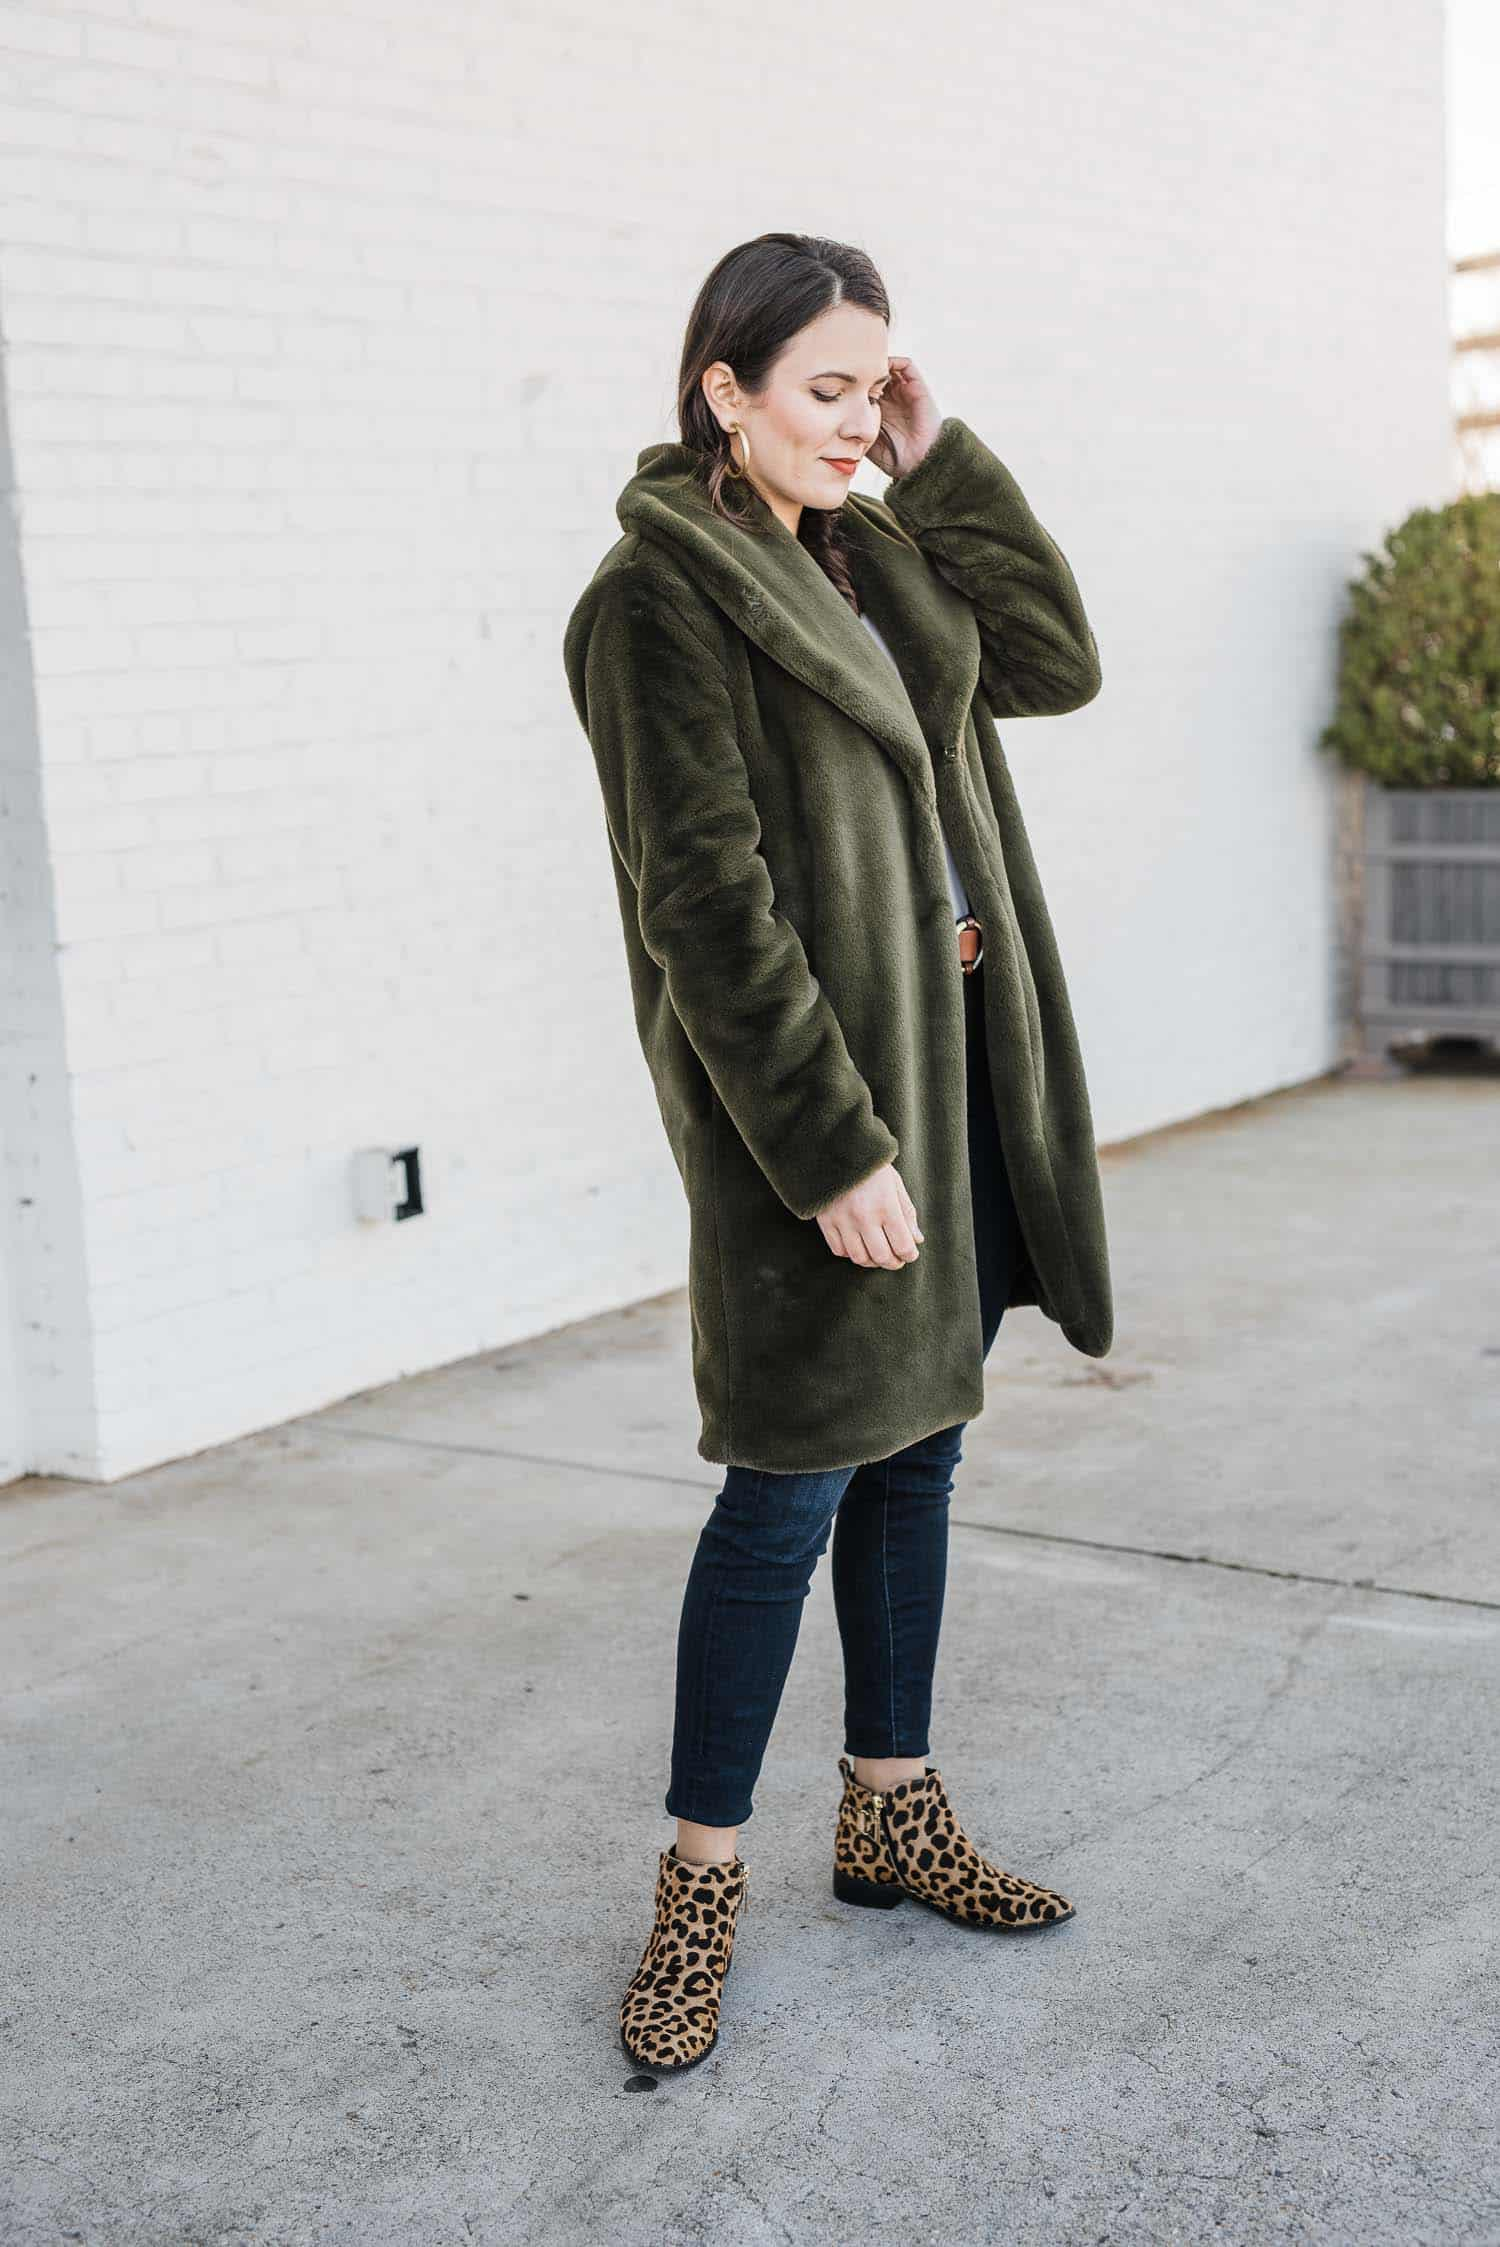 Green Faux Fur Coat & Winter Outfit by Jessica Camerata